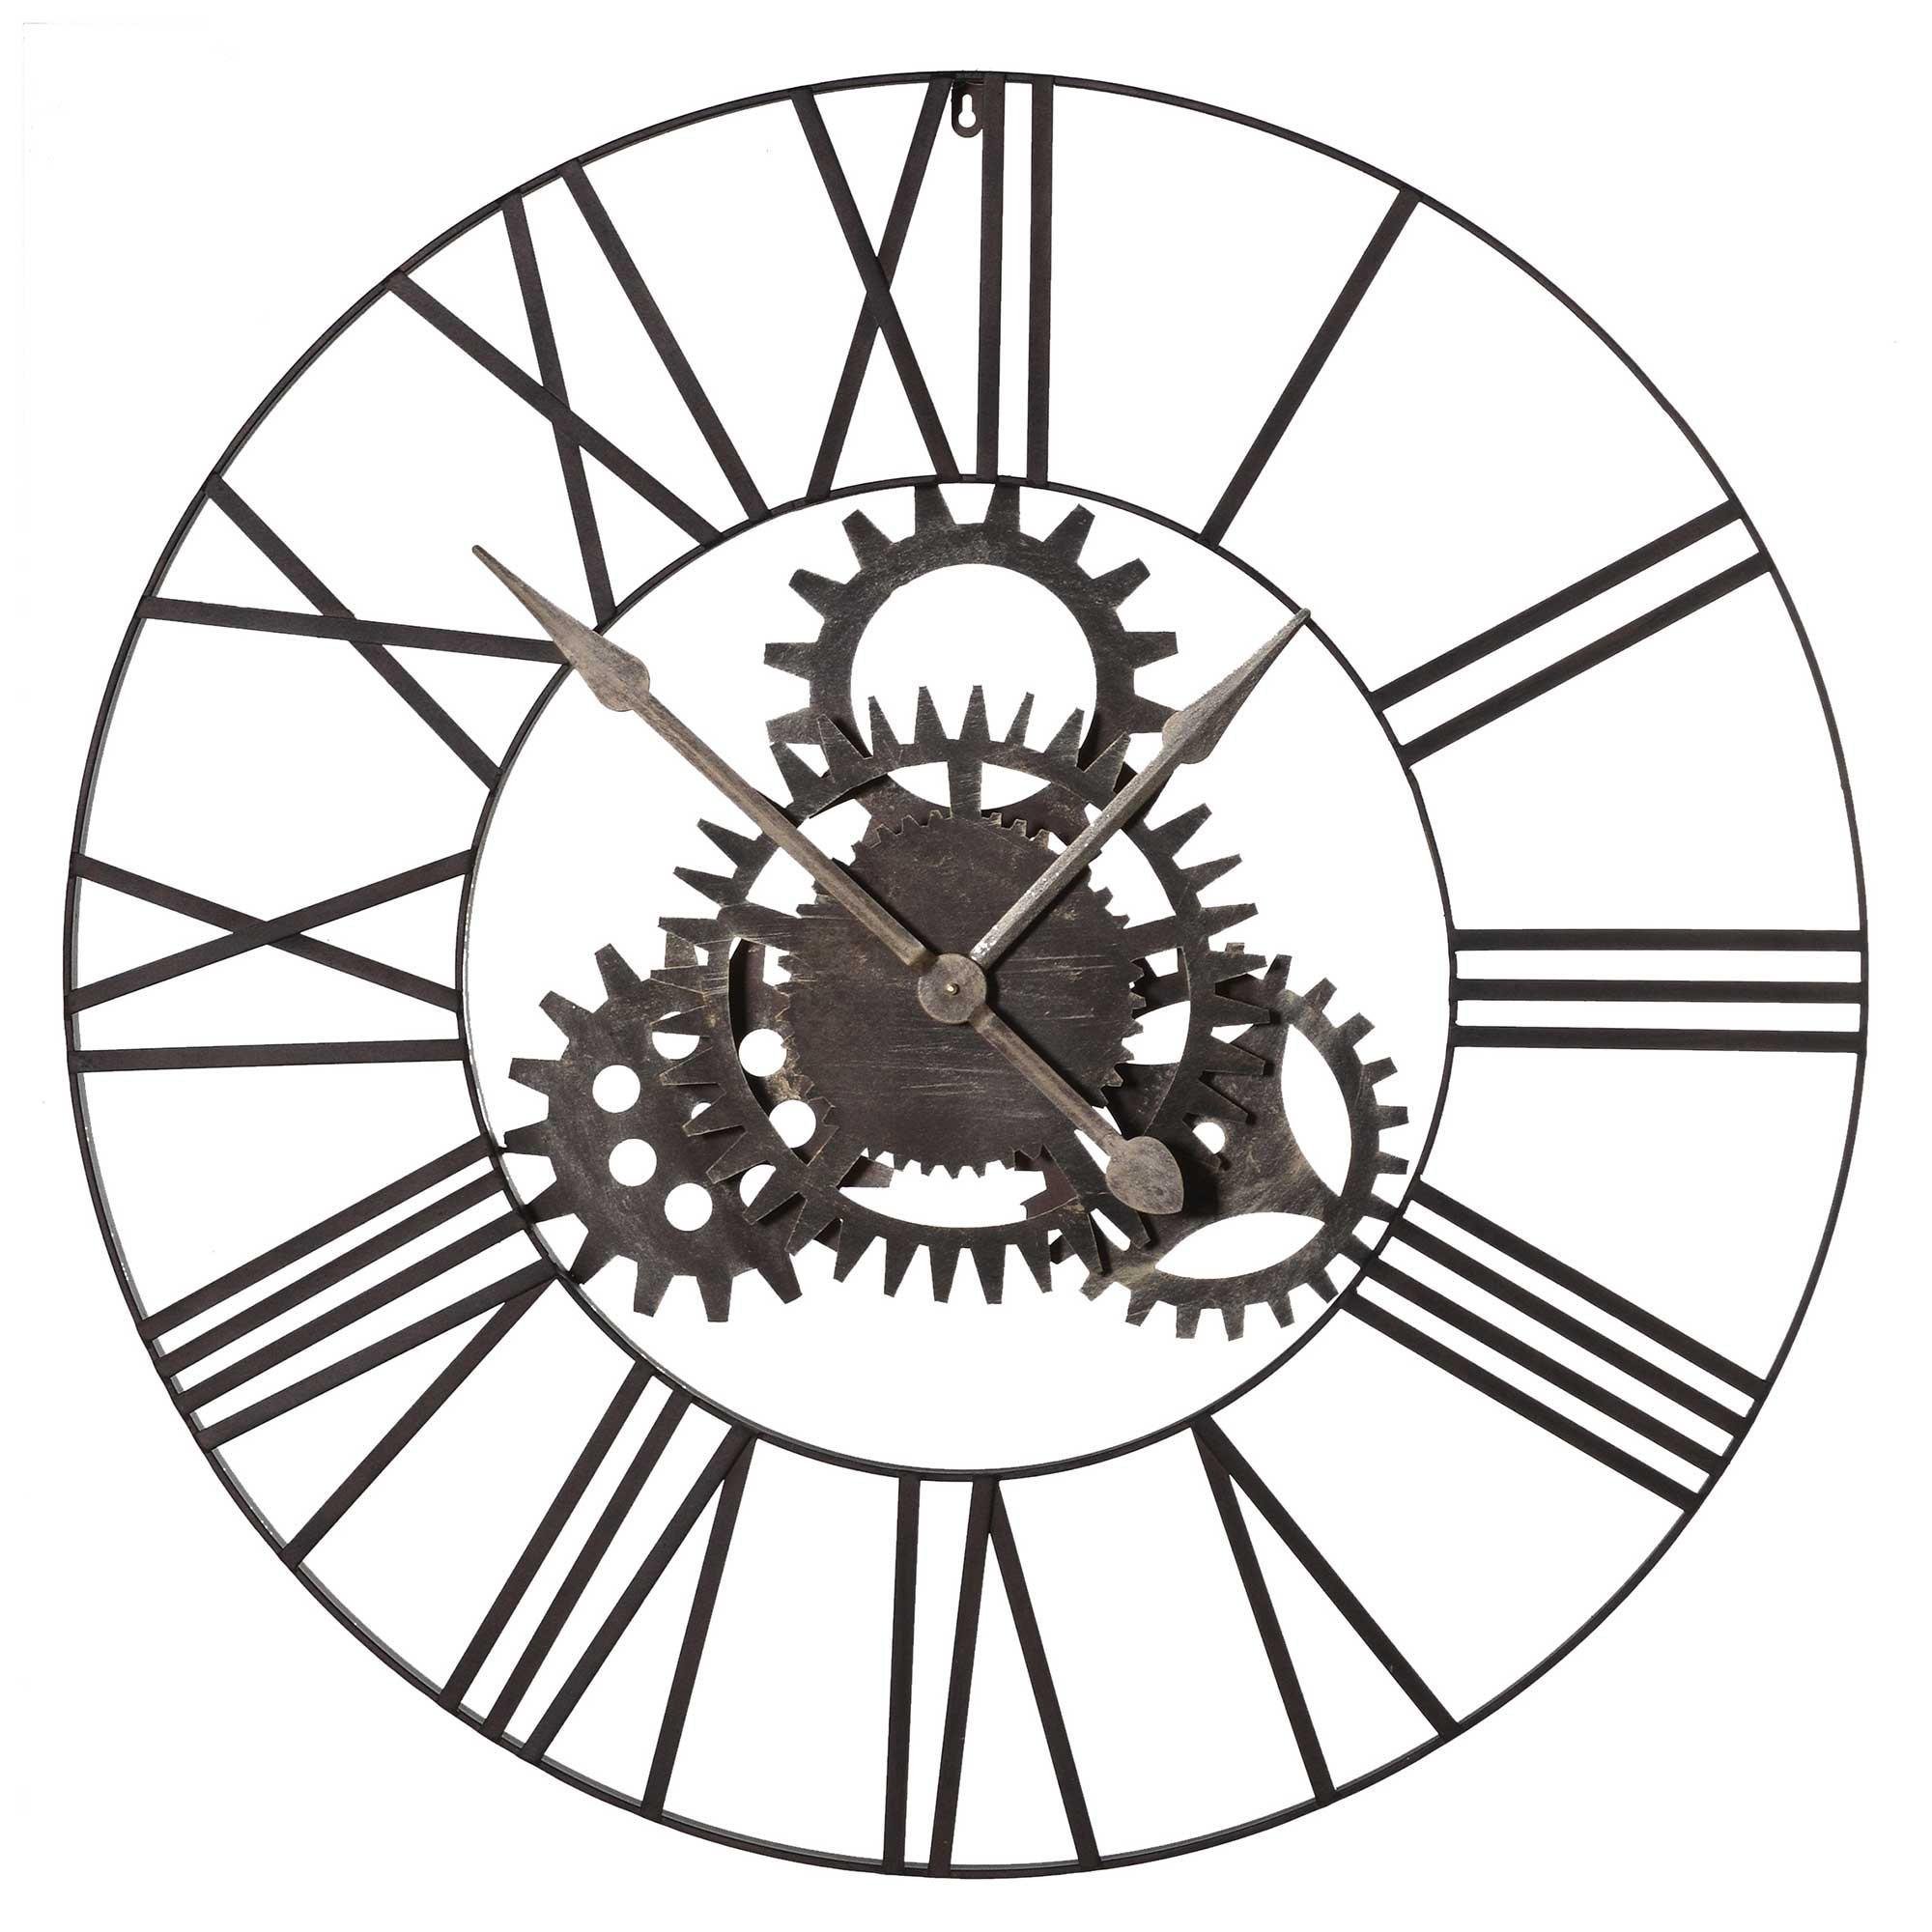 Steampunk clipart large clock. Drawing free download best